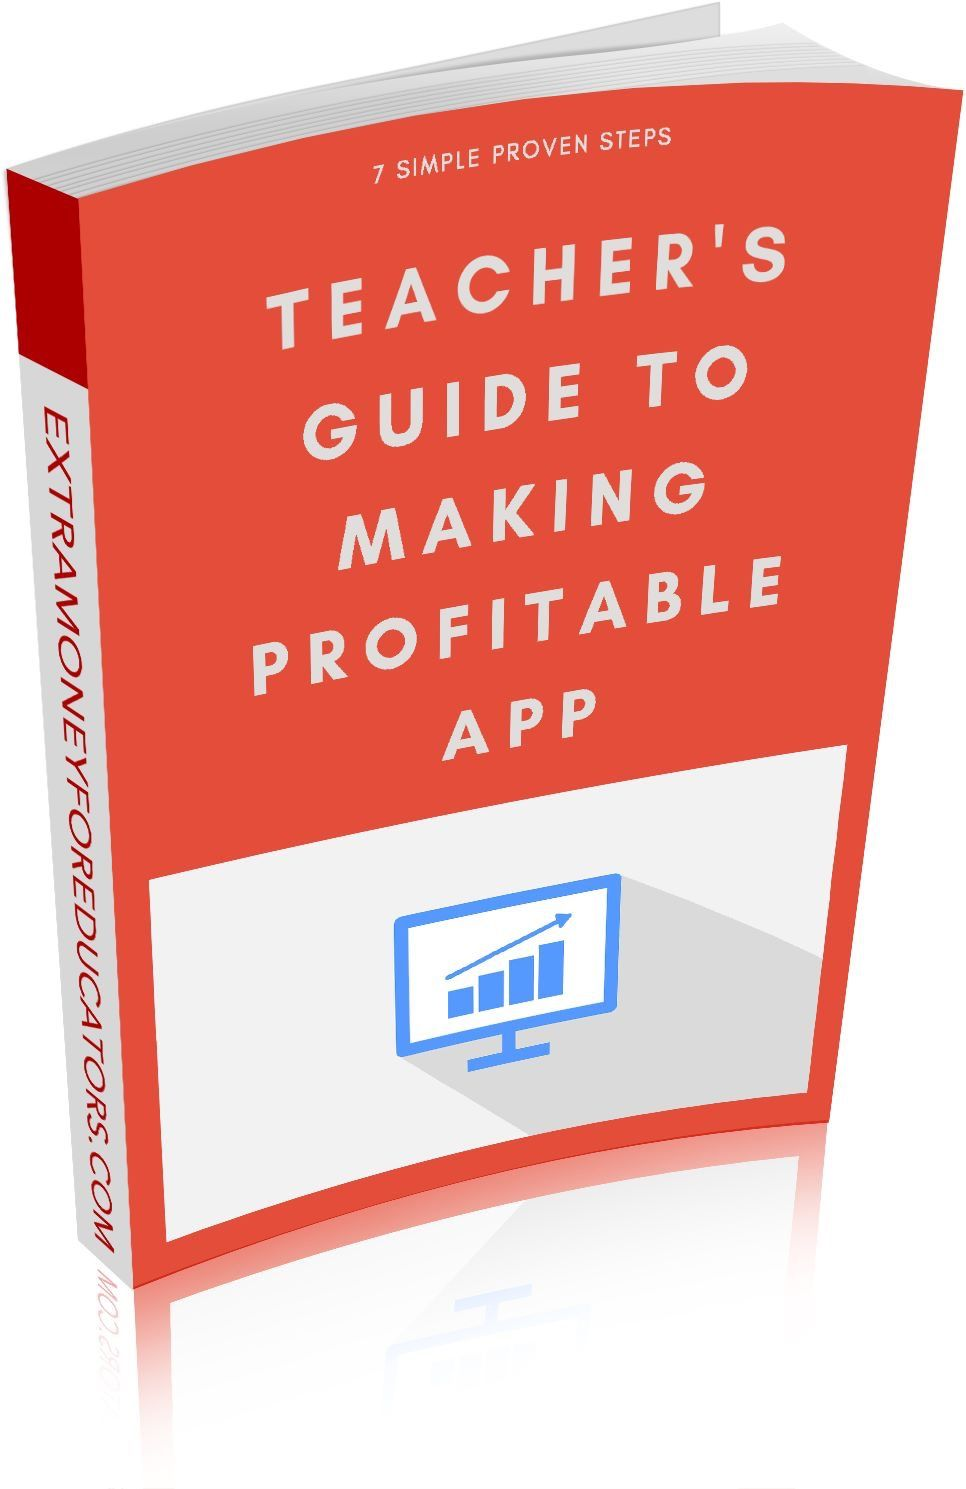 [Free eBook] Get this free eBook on '7 Simple Proven Steps